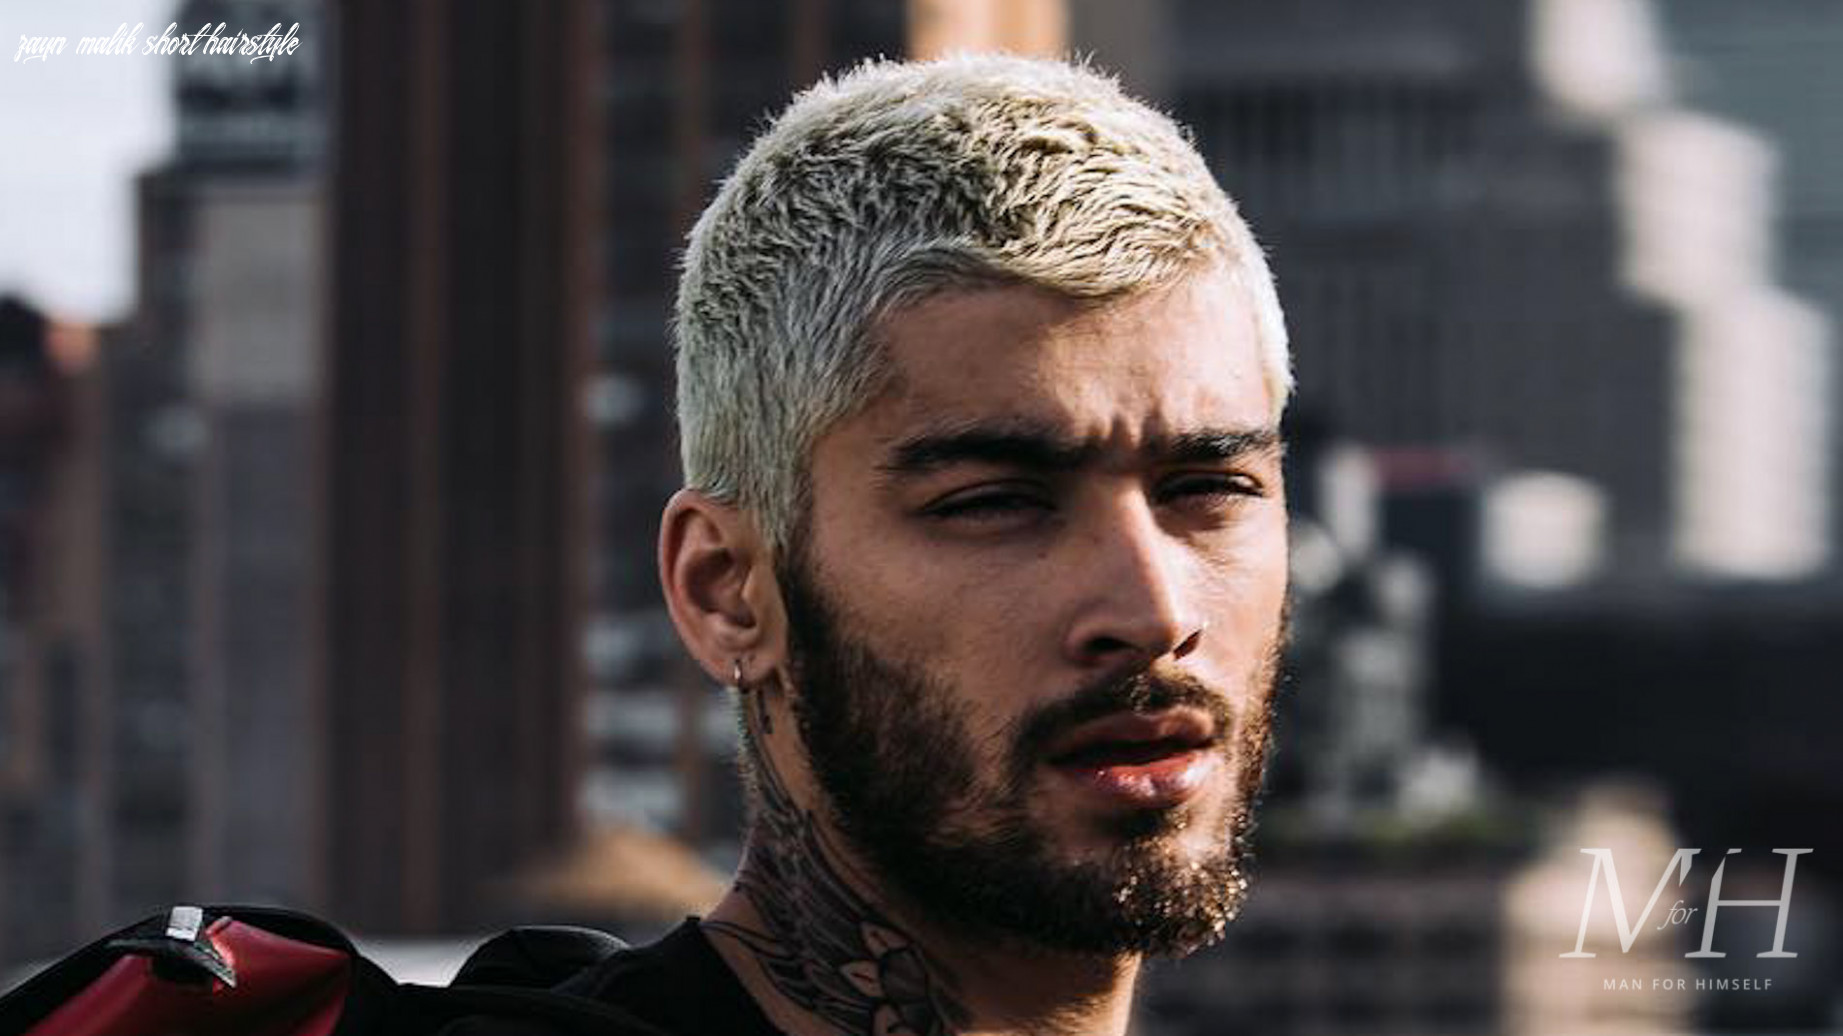 12 buzz cut hairstyles to try in 12 | man for himself zayn malik short hairstyle